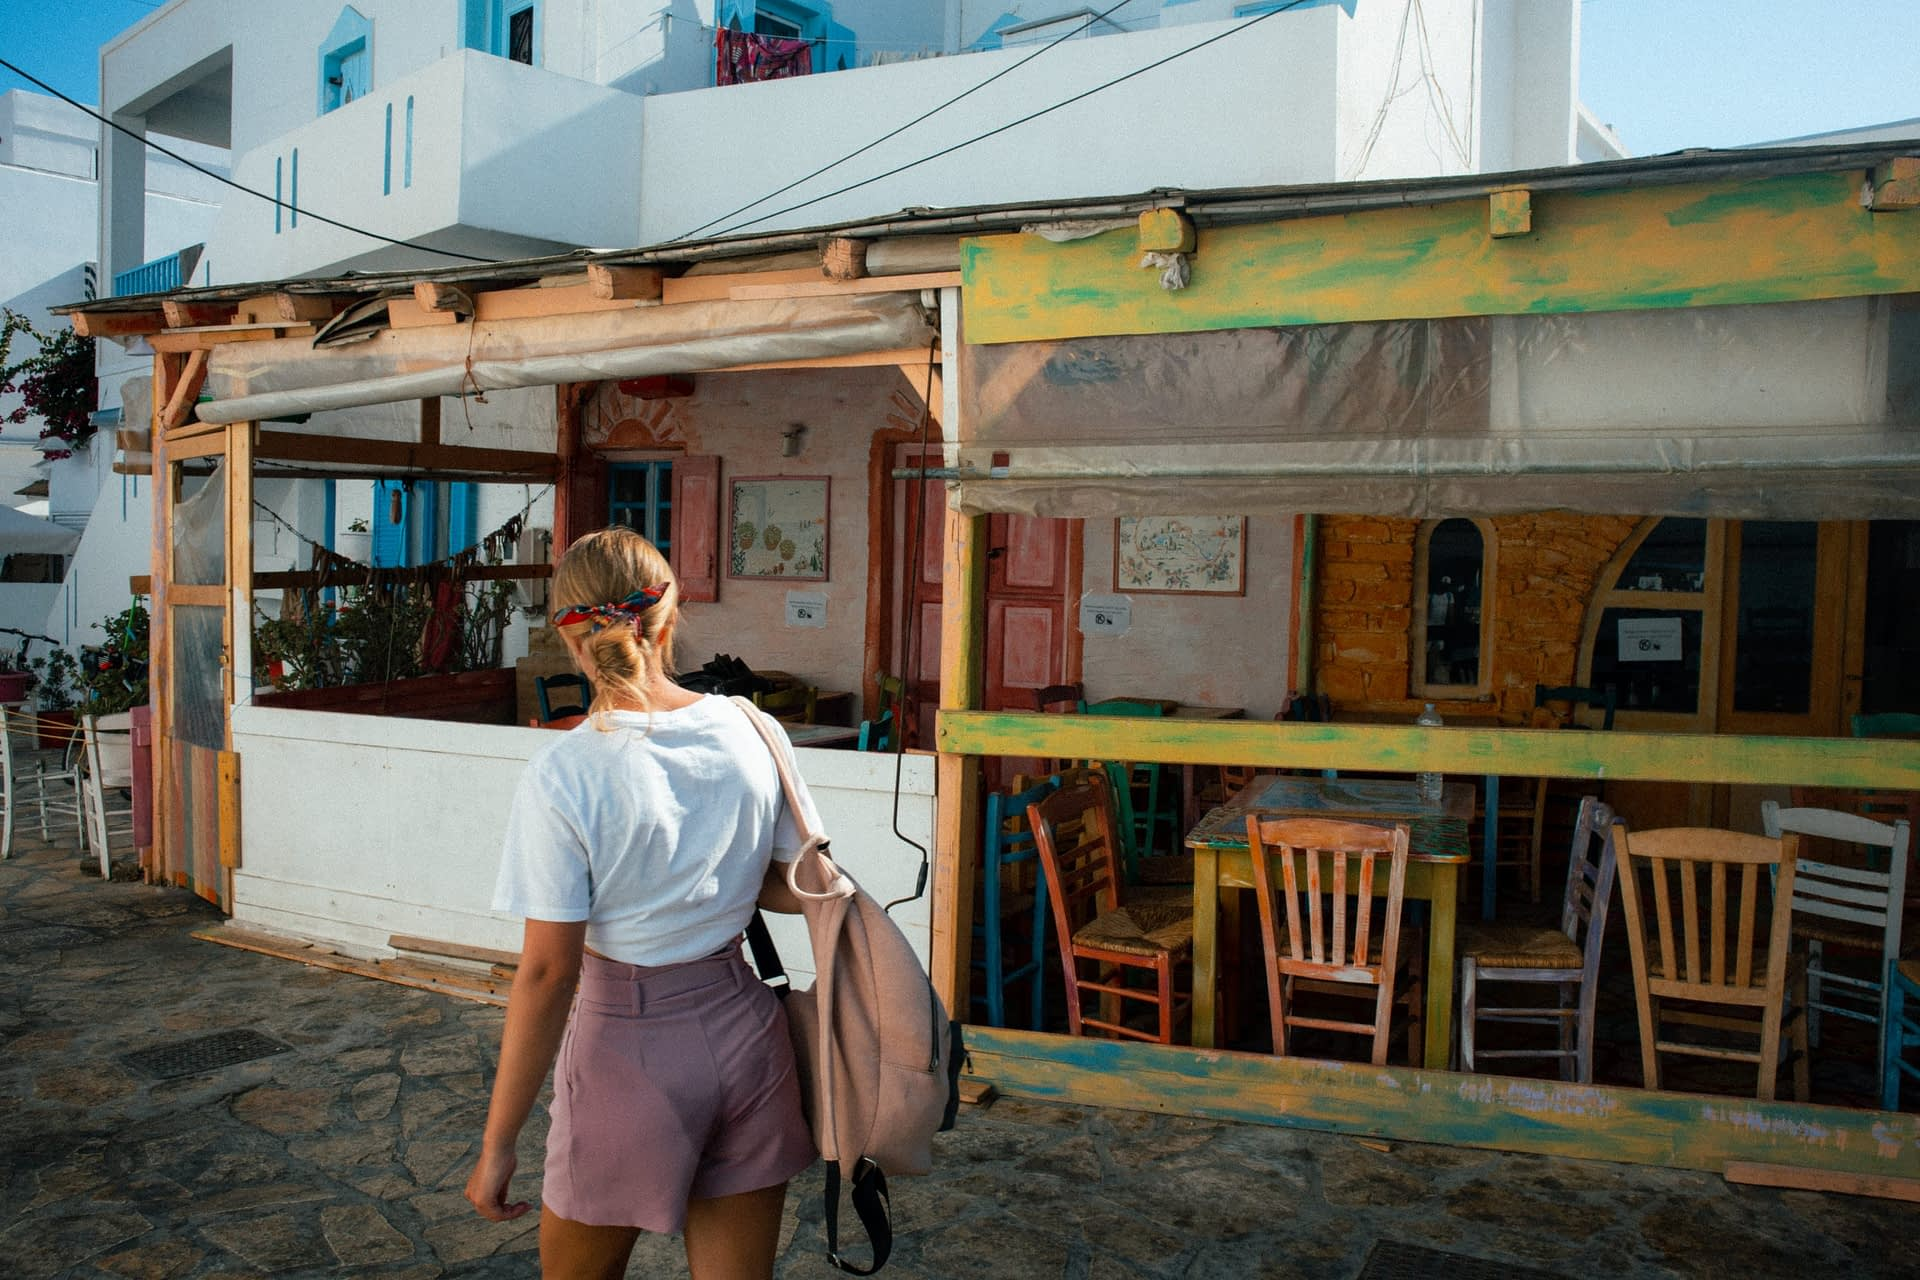 A woman strolling past colourful buildings in Antiparos. Things to do in Antiparos